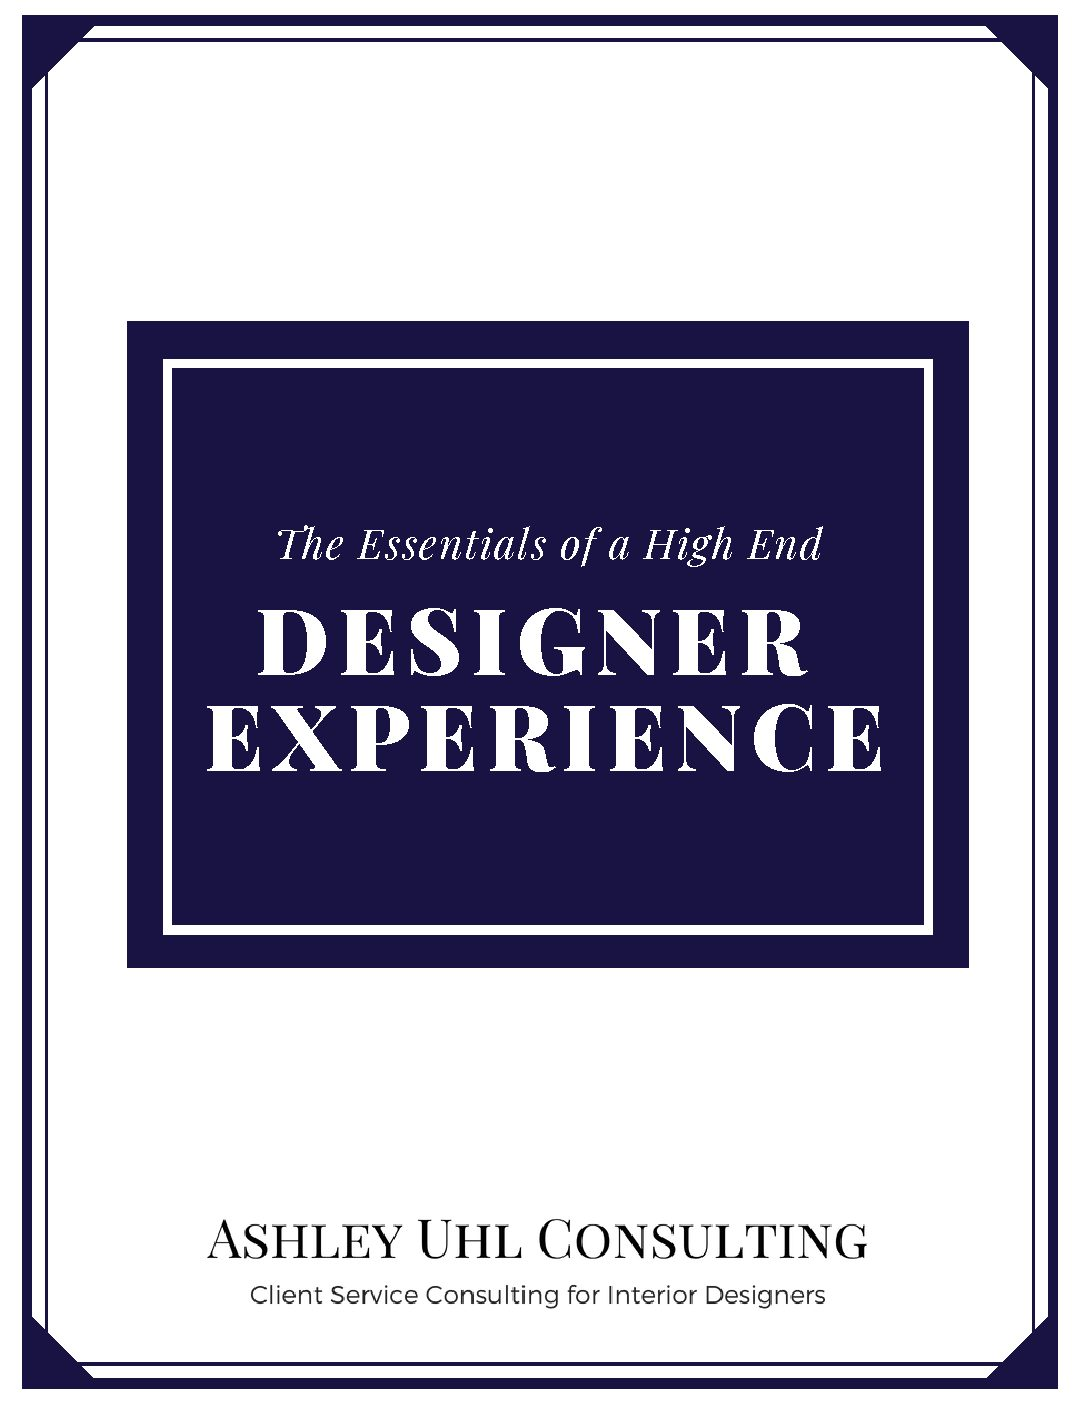 The Essentials of a High End Designer Experience